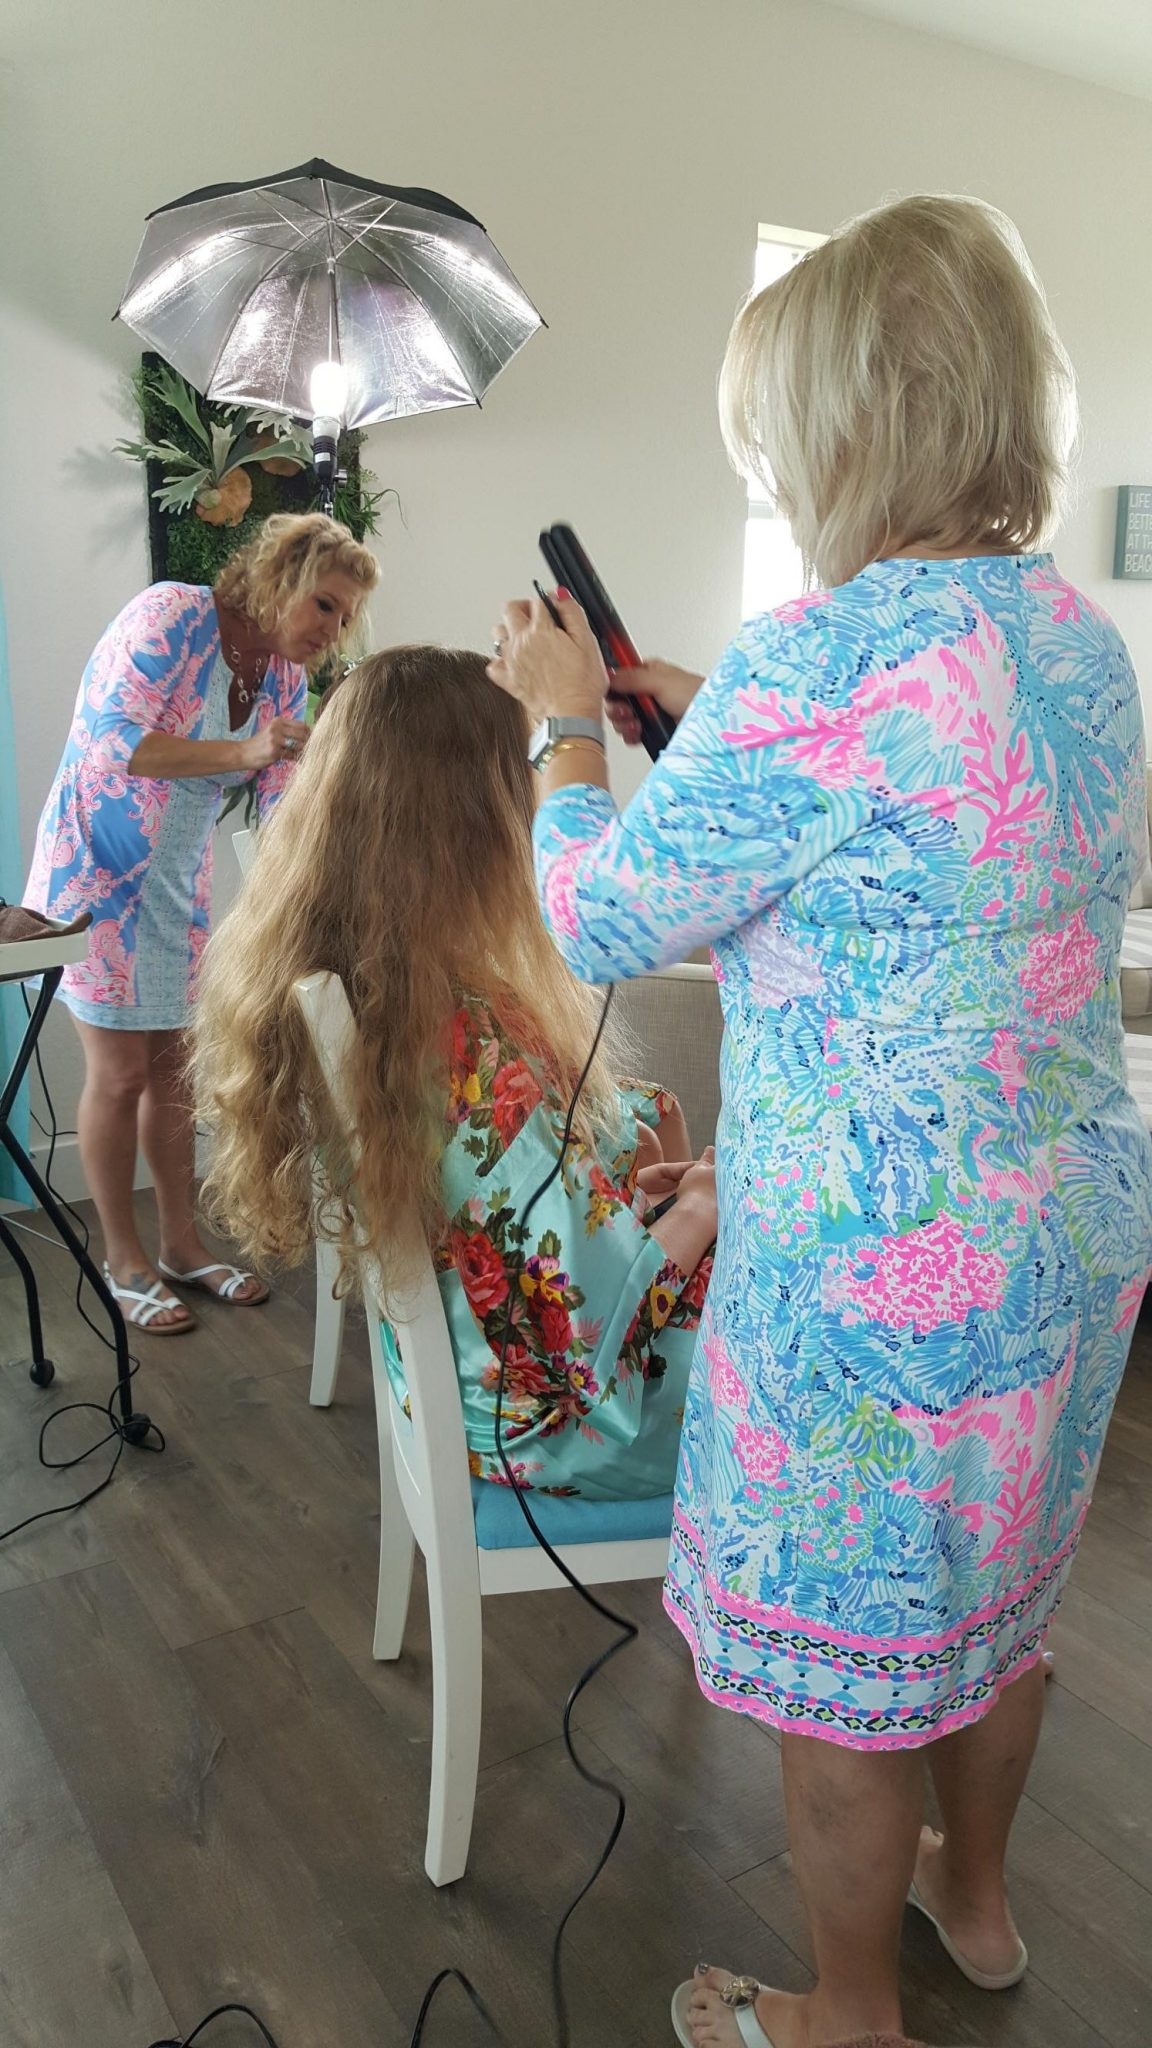 Shear Sailing June Wedding Hair Styling and Airbrush makeup and Hair Styling